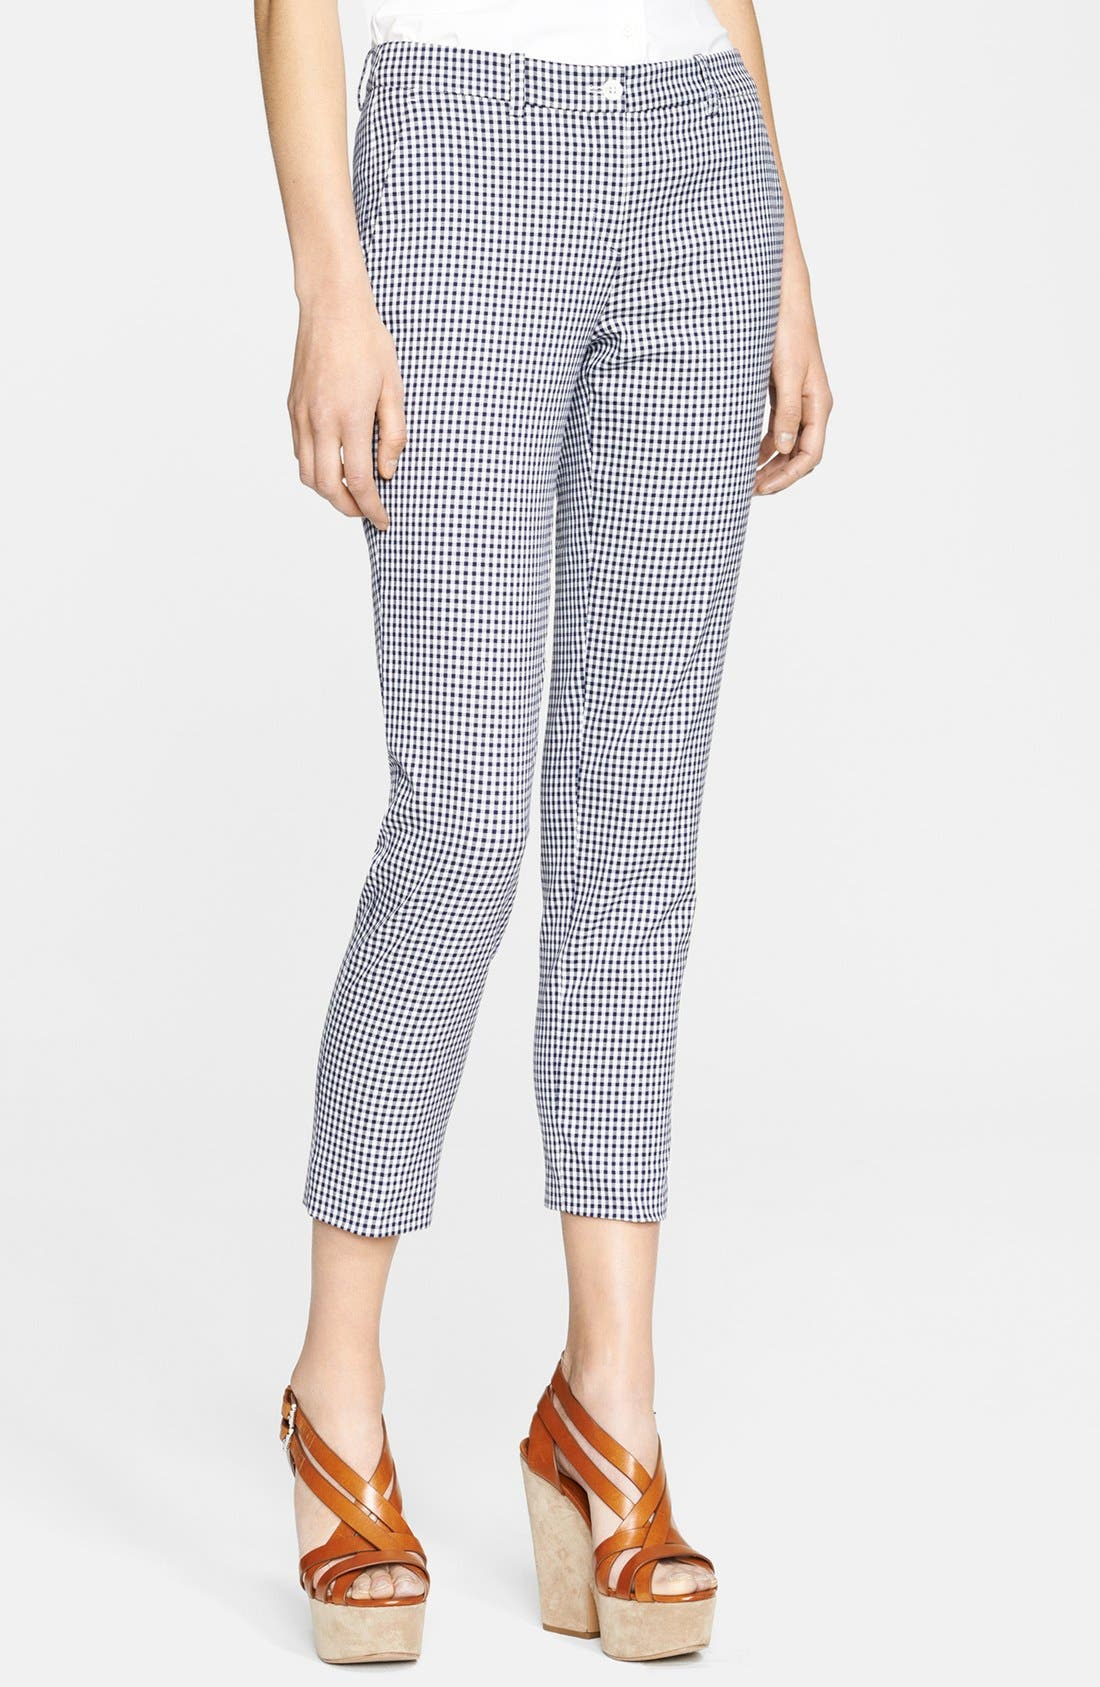 Alternate Image 1 Selected - Michael Kors 'Samantha' Gingham Pants